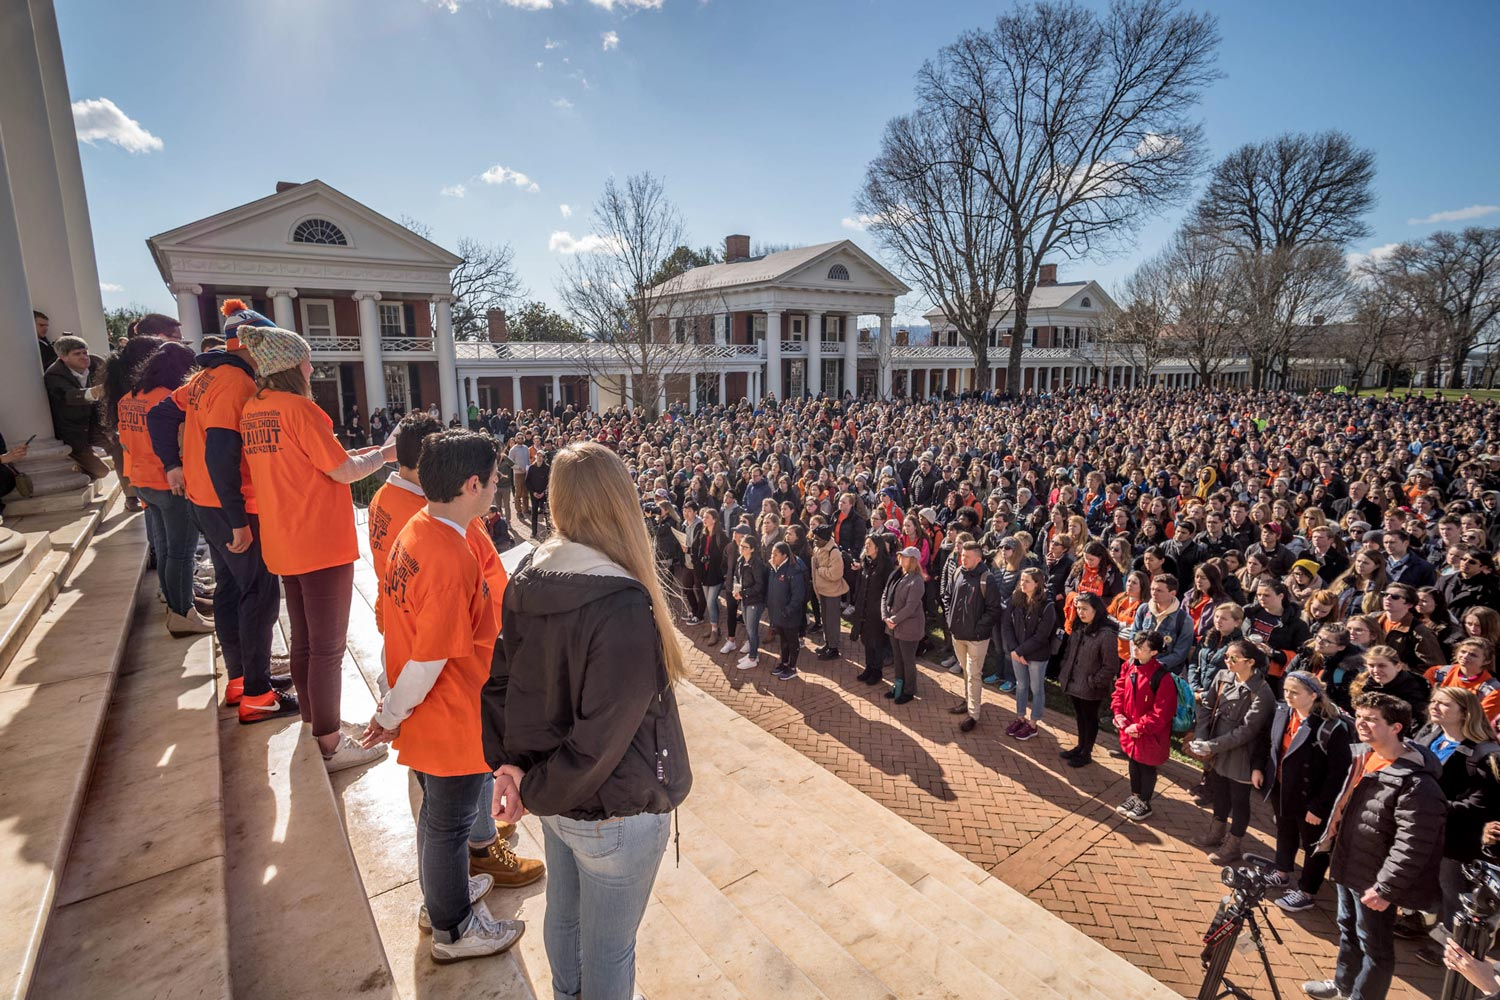 Student Council President Sarah Kenny led the organization of the March 14 walkout at UVA. Hundreds of students, faculty, staff and community members joined the protest.